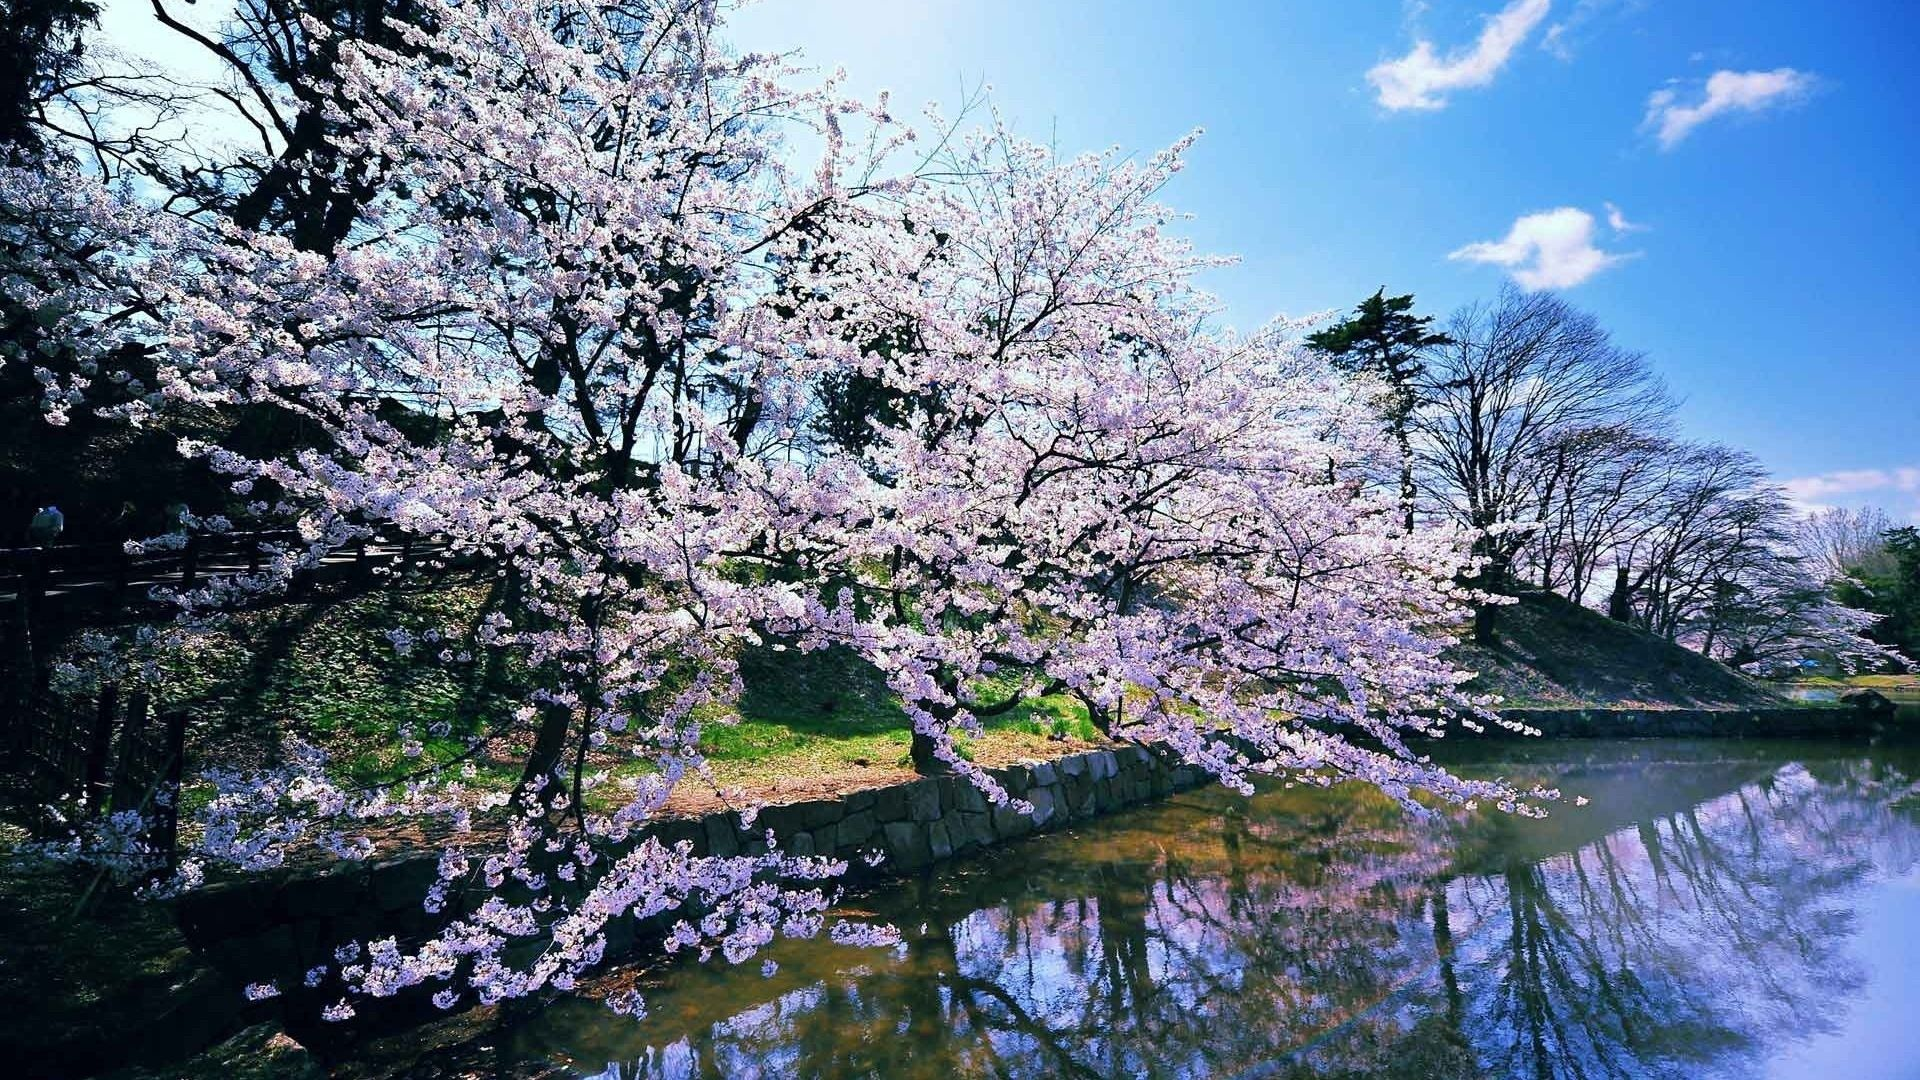 10 Top Free Early Spring Desktop Wallpaper Full Hd 1080p For Pc Background Spring Wallpaper Cherry Blossom Wallpaper Landscape Wallpaper